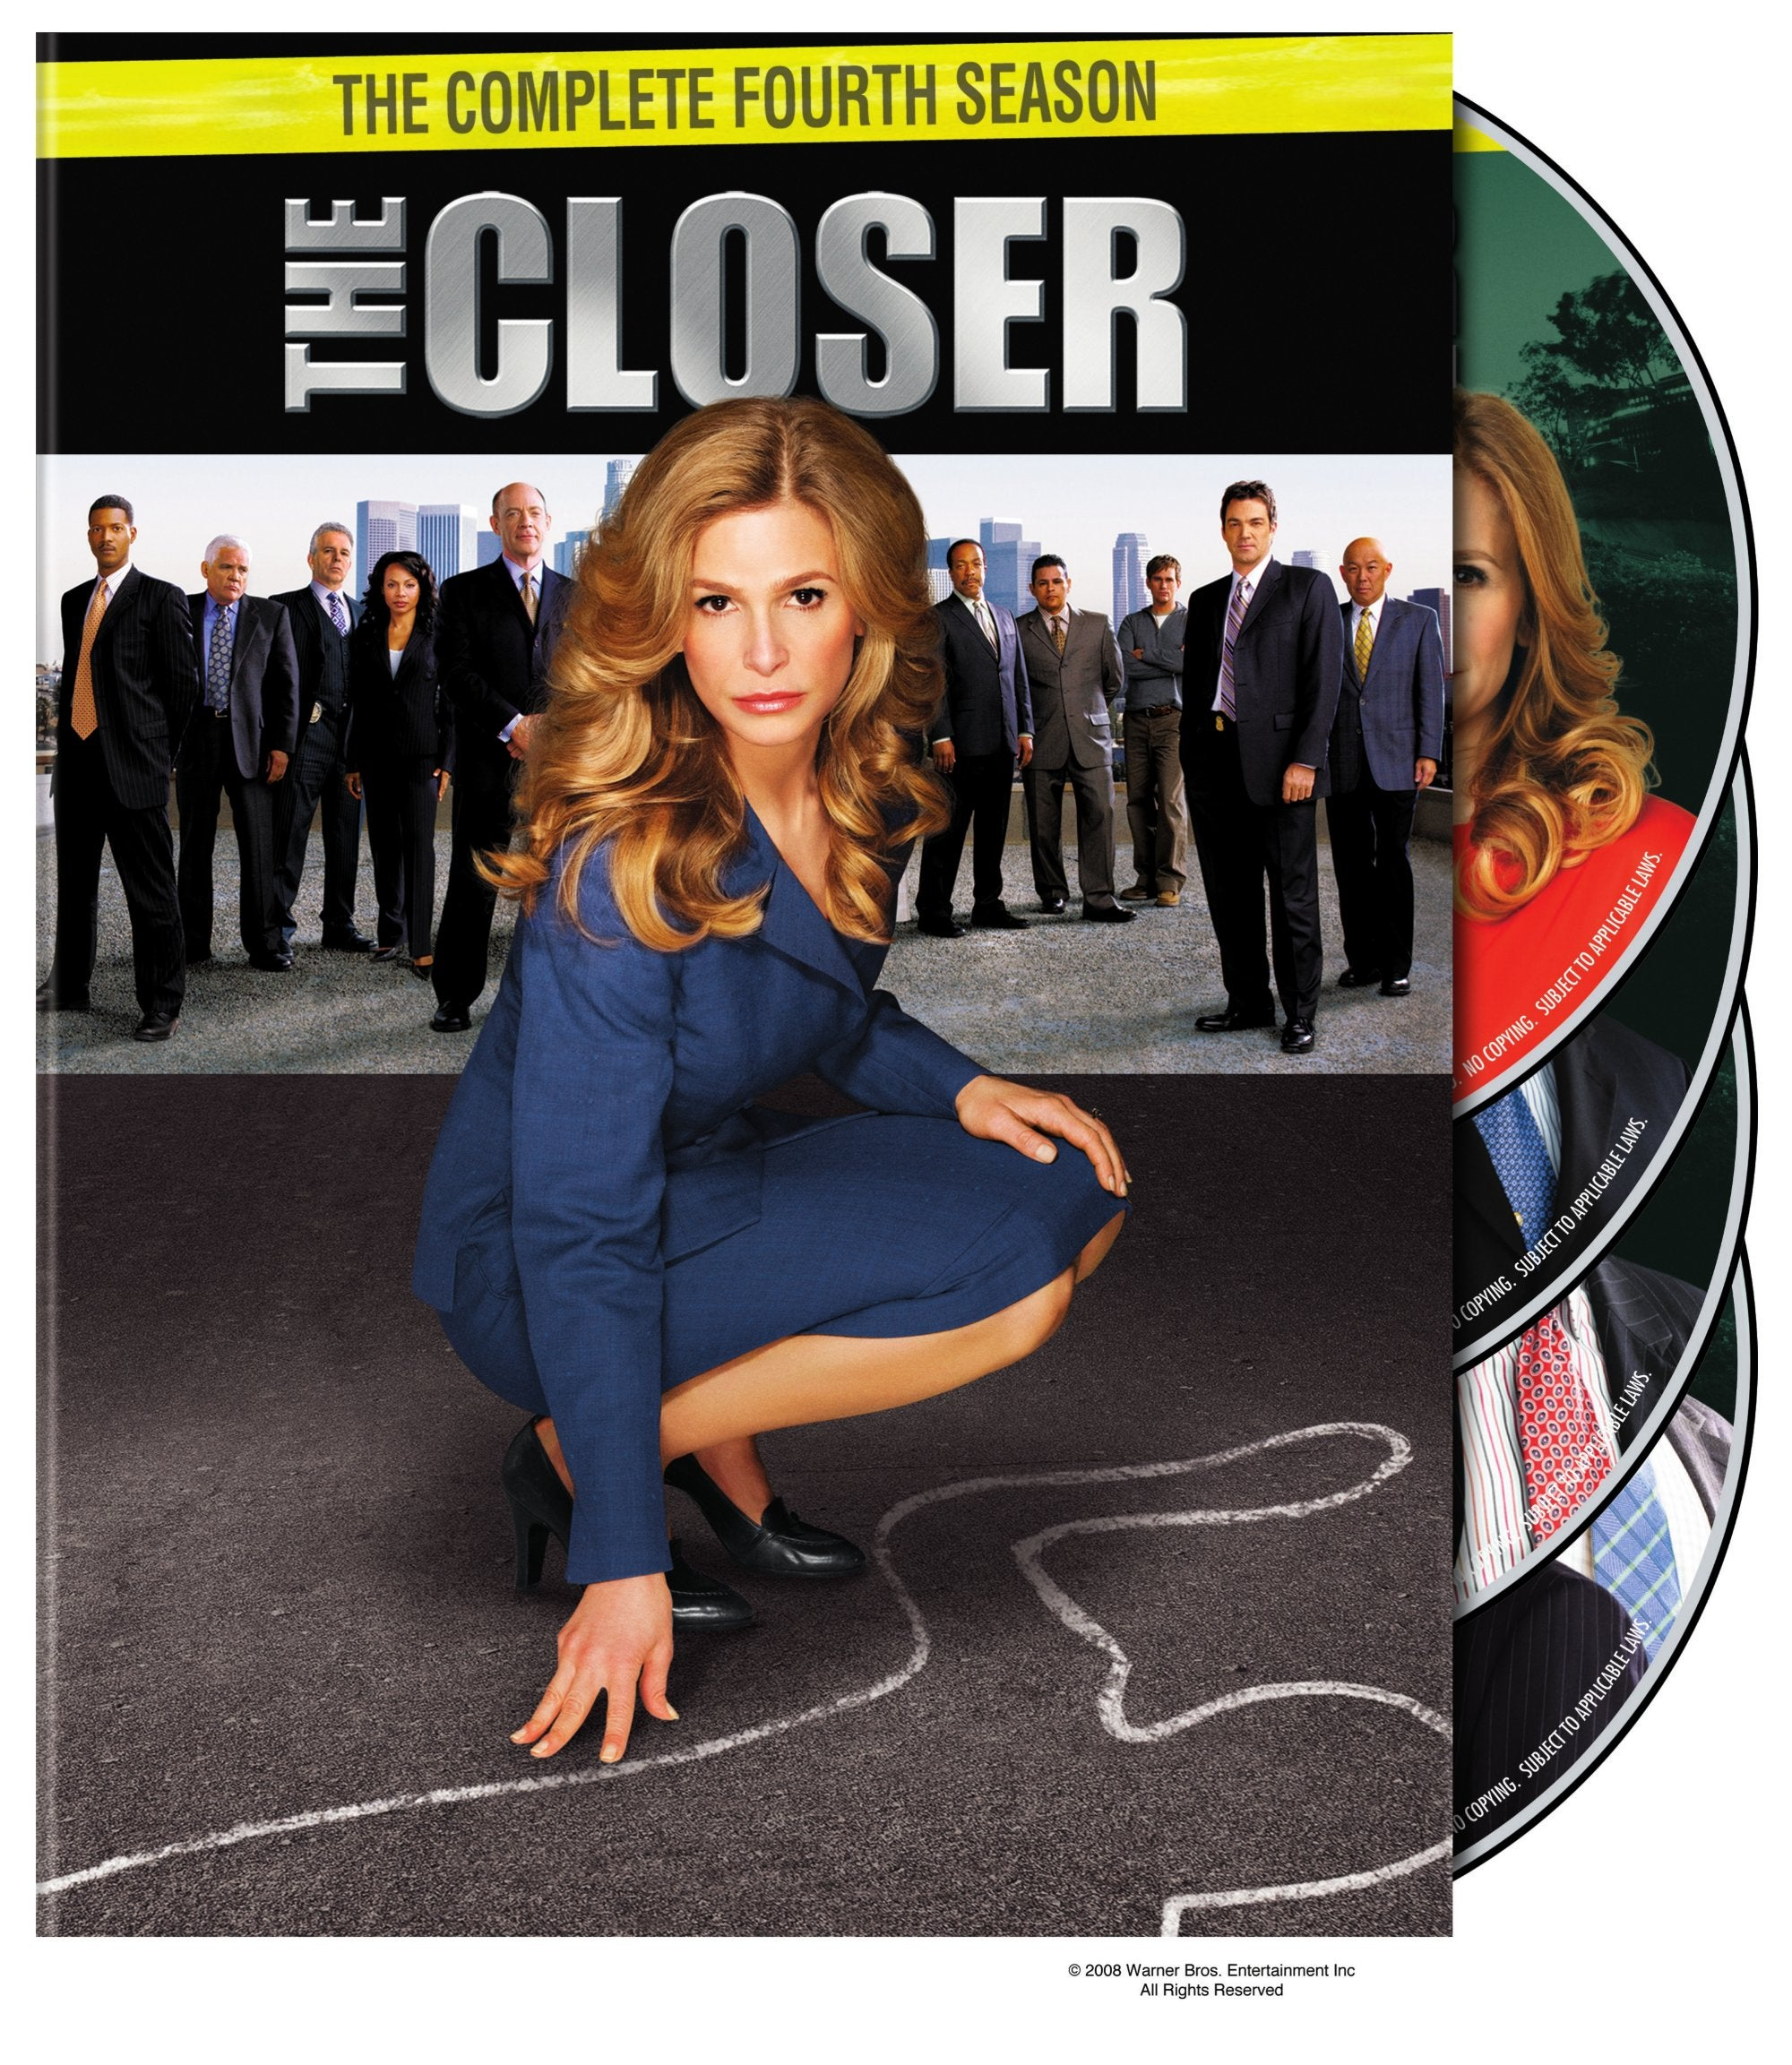 The Closer: The Complete Fourth Season (DVD)